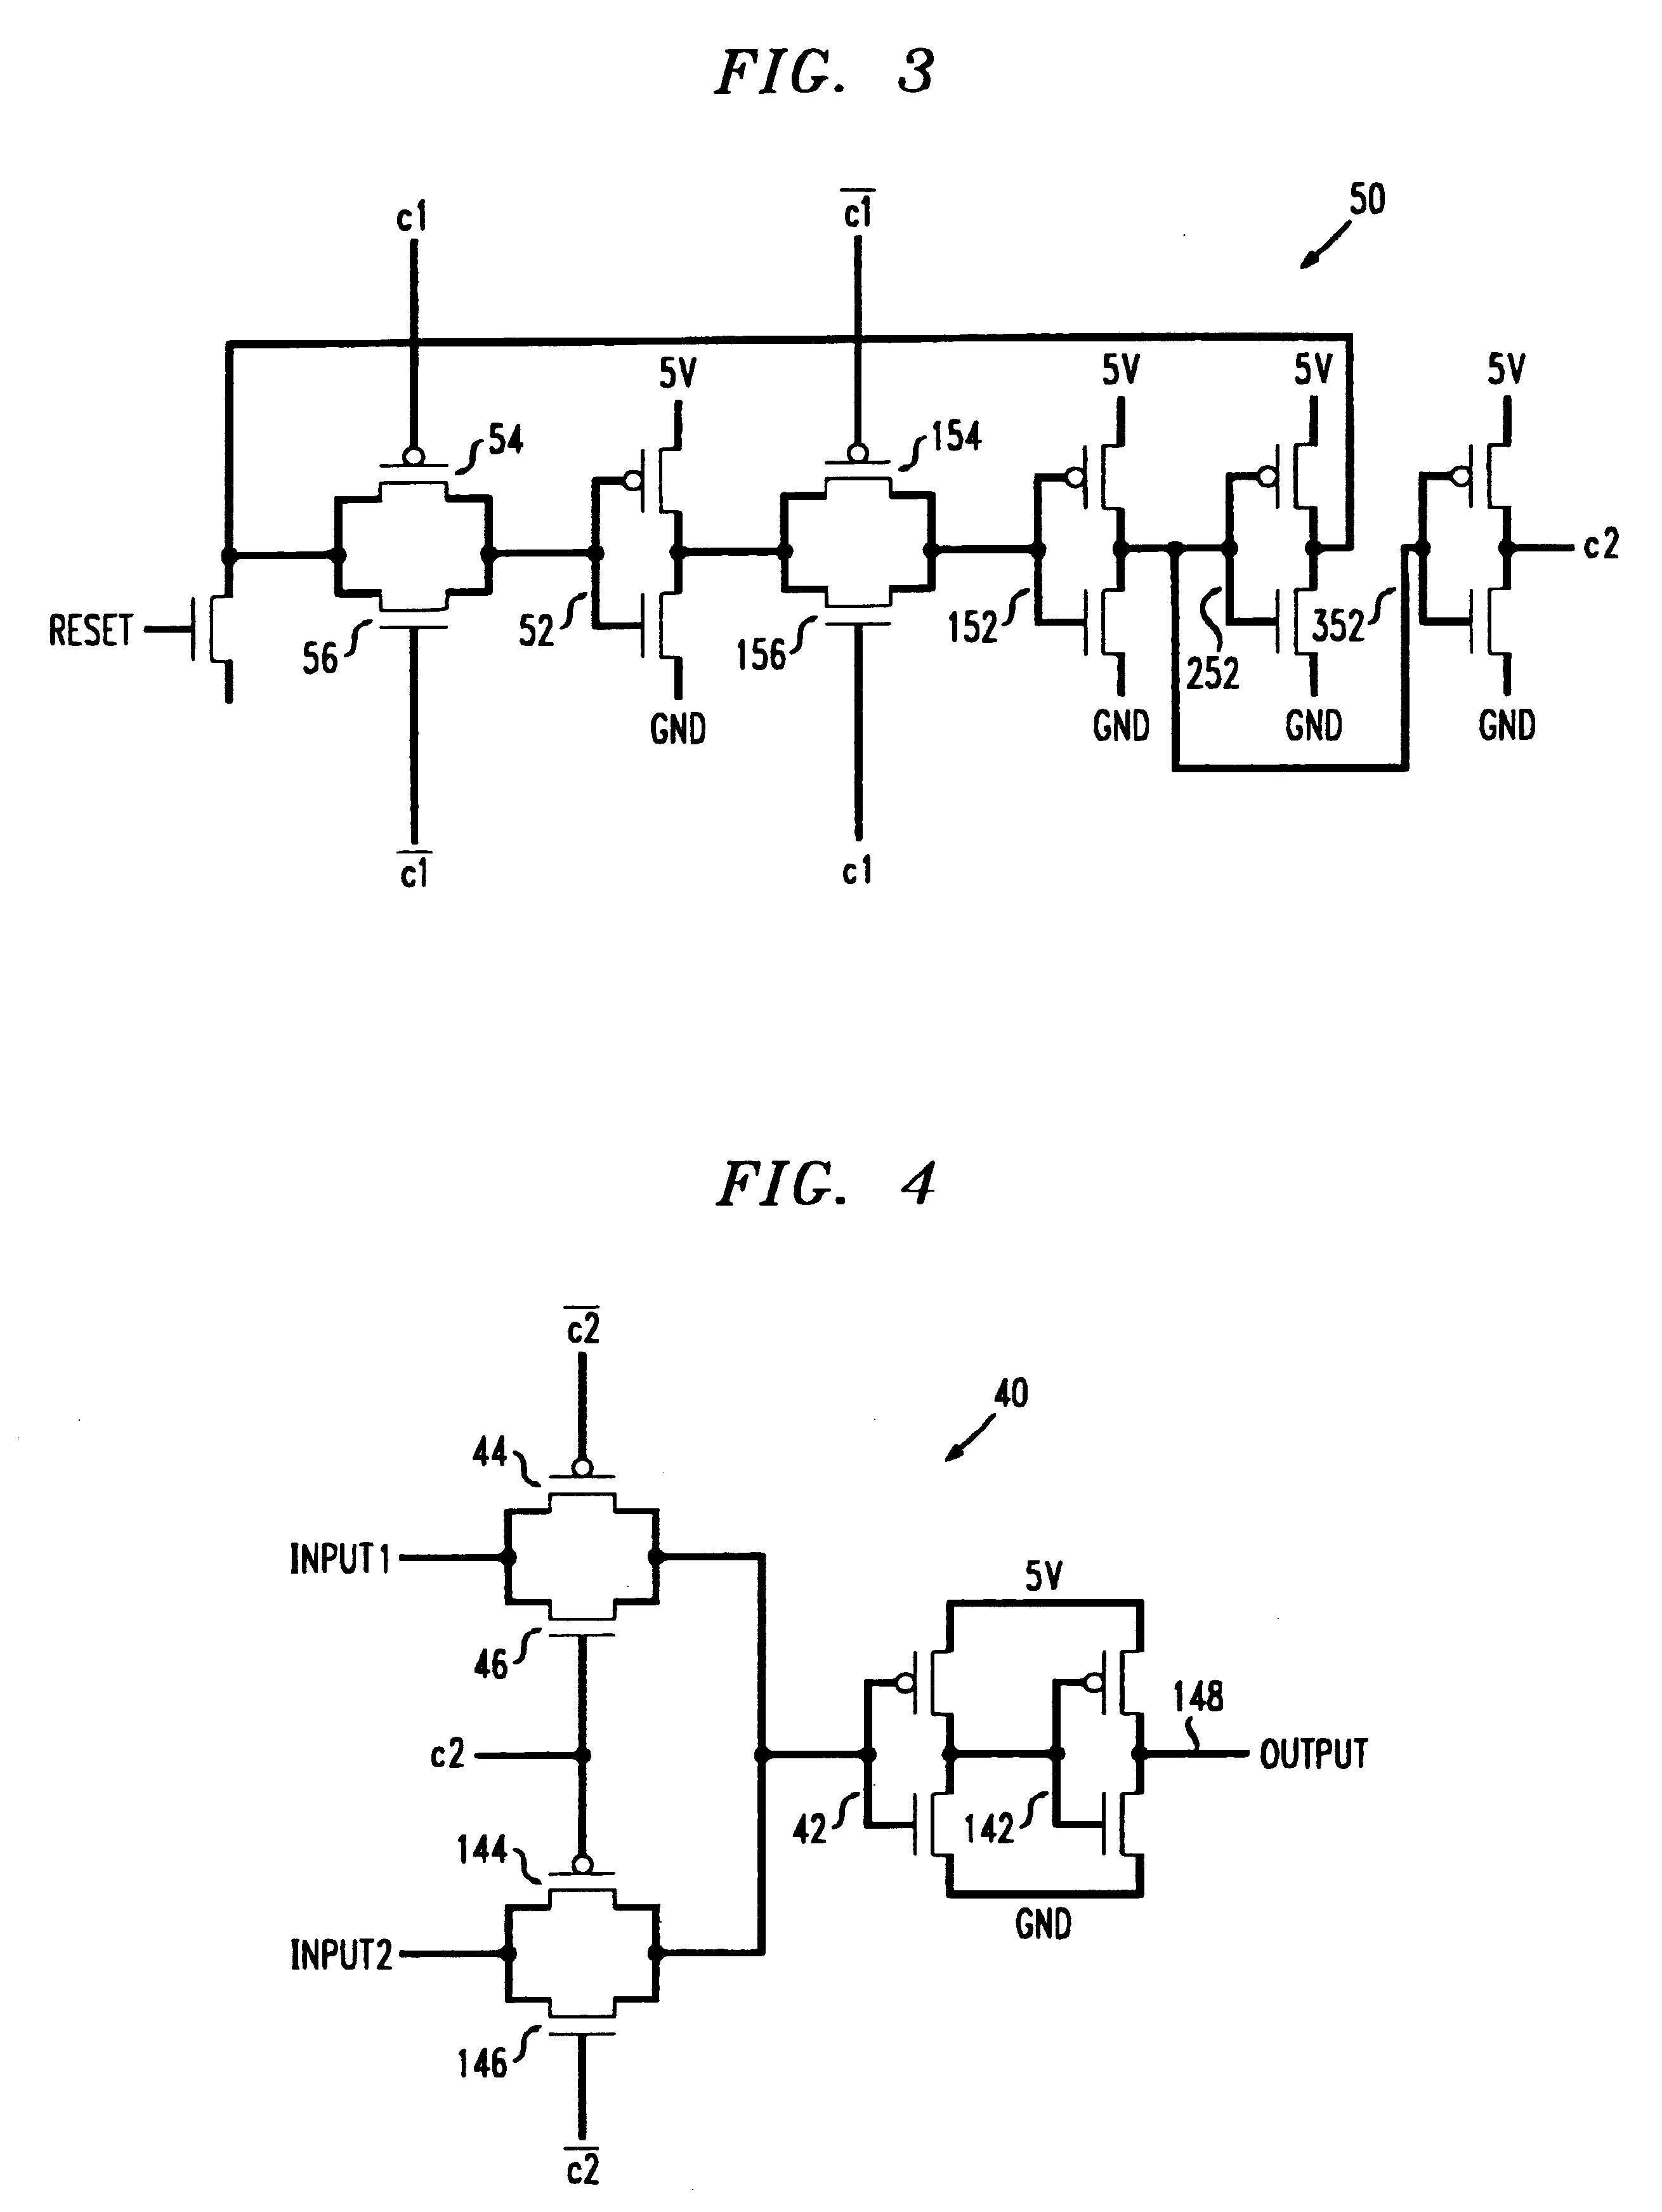 US6191930 together with Vhst Parts further Valve And Pump Symbol Using Tikz further Fluxcapacitor as well US6921225. on schematic drawing